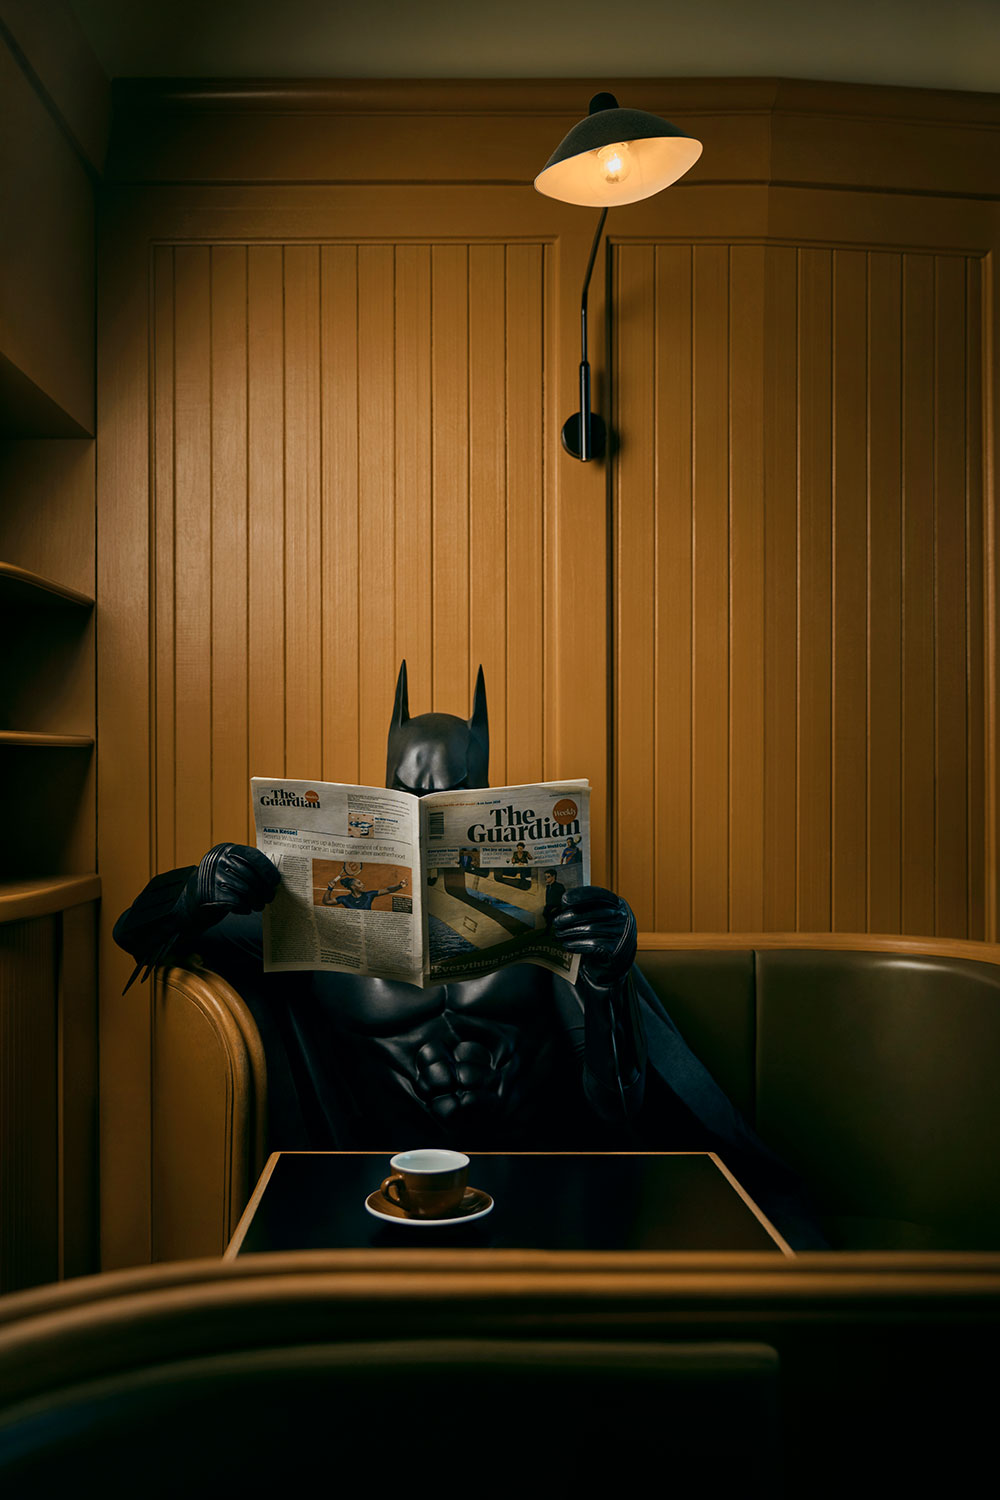 Trapped in his everyday commitment to justice, Batman also needs time between that, even if it's only for a short time. Just to have the feeling of a normal life next to his work, which takes him completely – just be human.